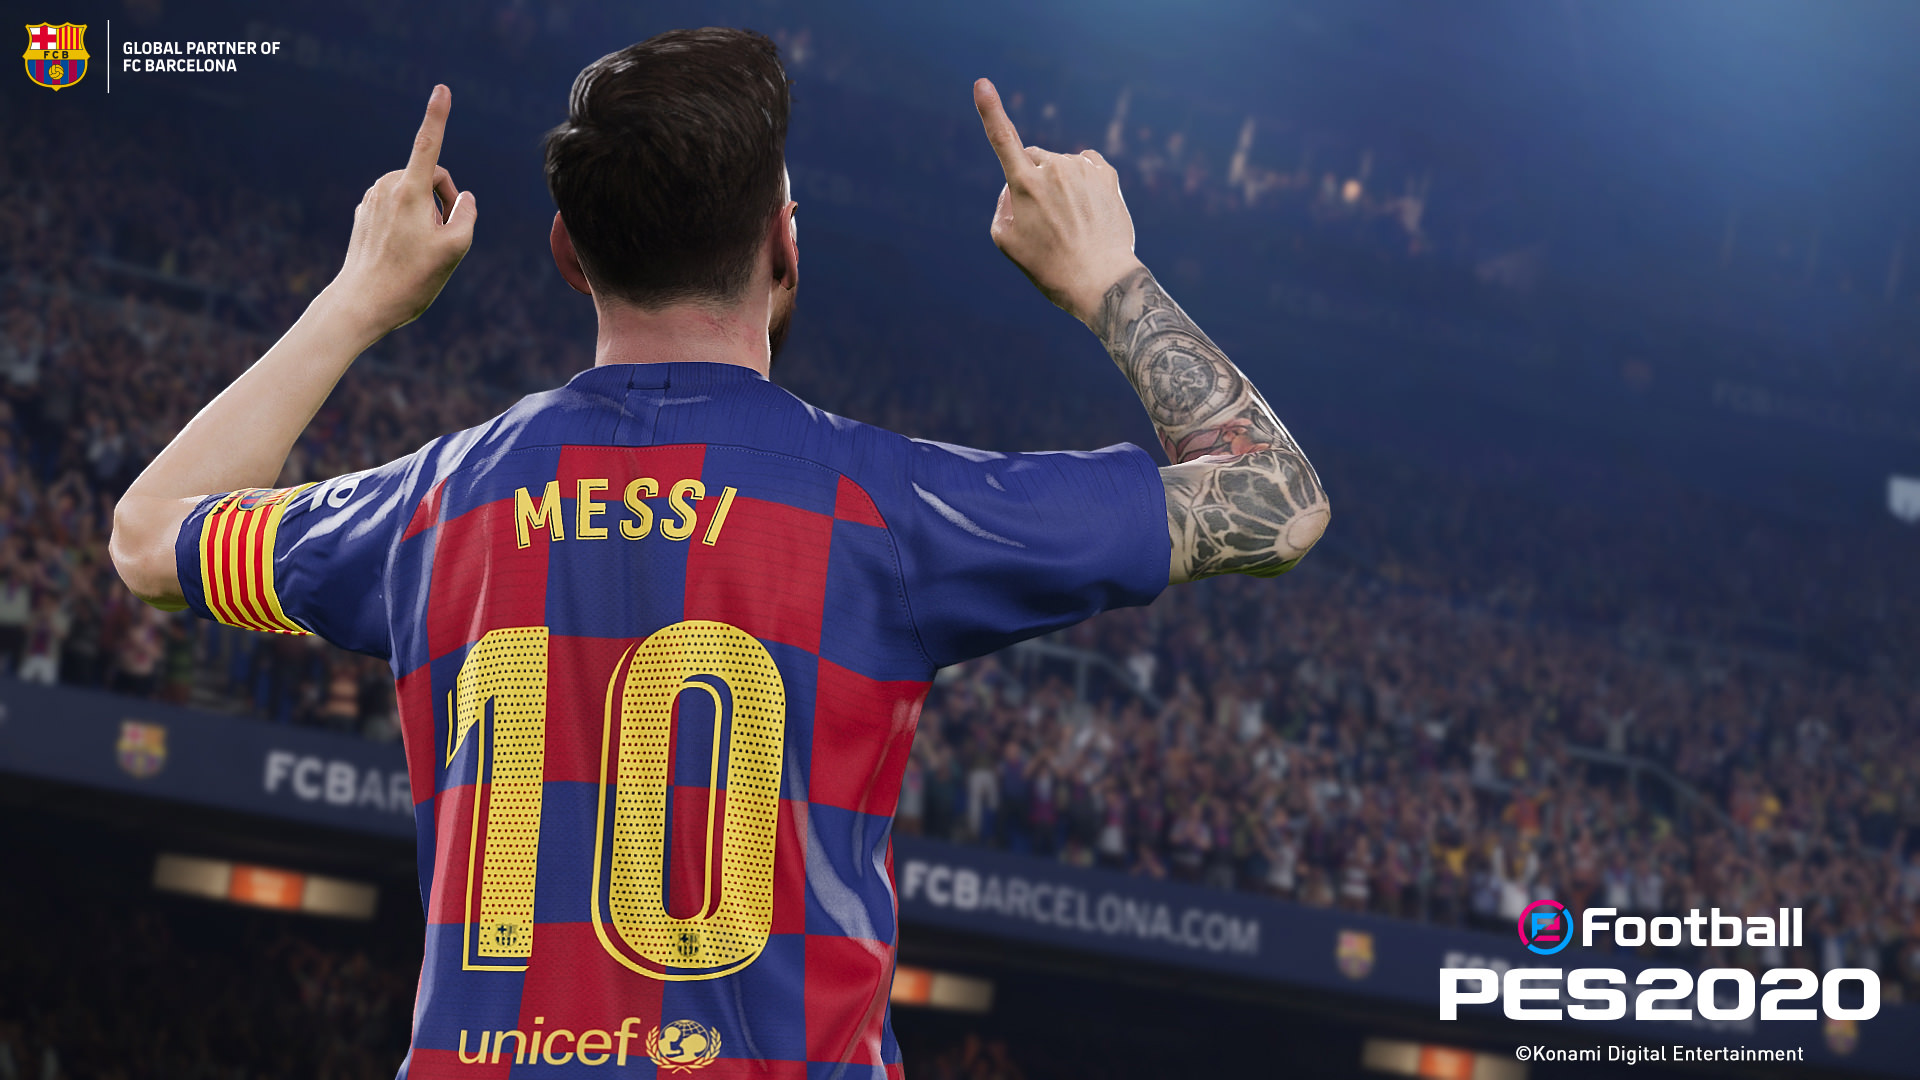 Free Download Pes 2020 Screenshots Fifplay 1920x1080 For Your Desktop Mobile Tablet Explore 47 Messi 2020 4k Mobile Wallpapers Messi 2020 4k Mobile Wallpapers Messi 2020 Iphone Wallpapers 4k Mobile Wallpaper